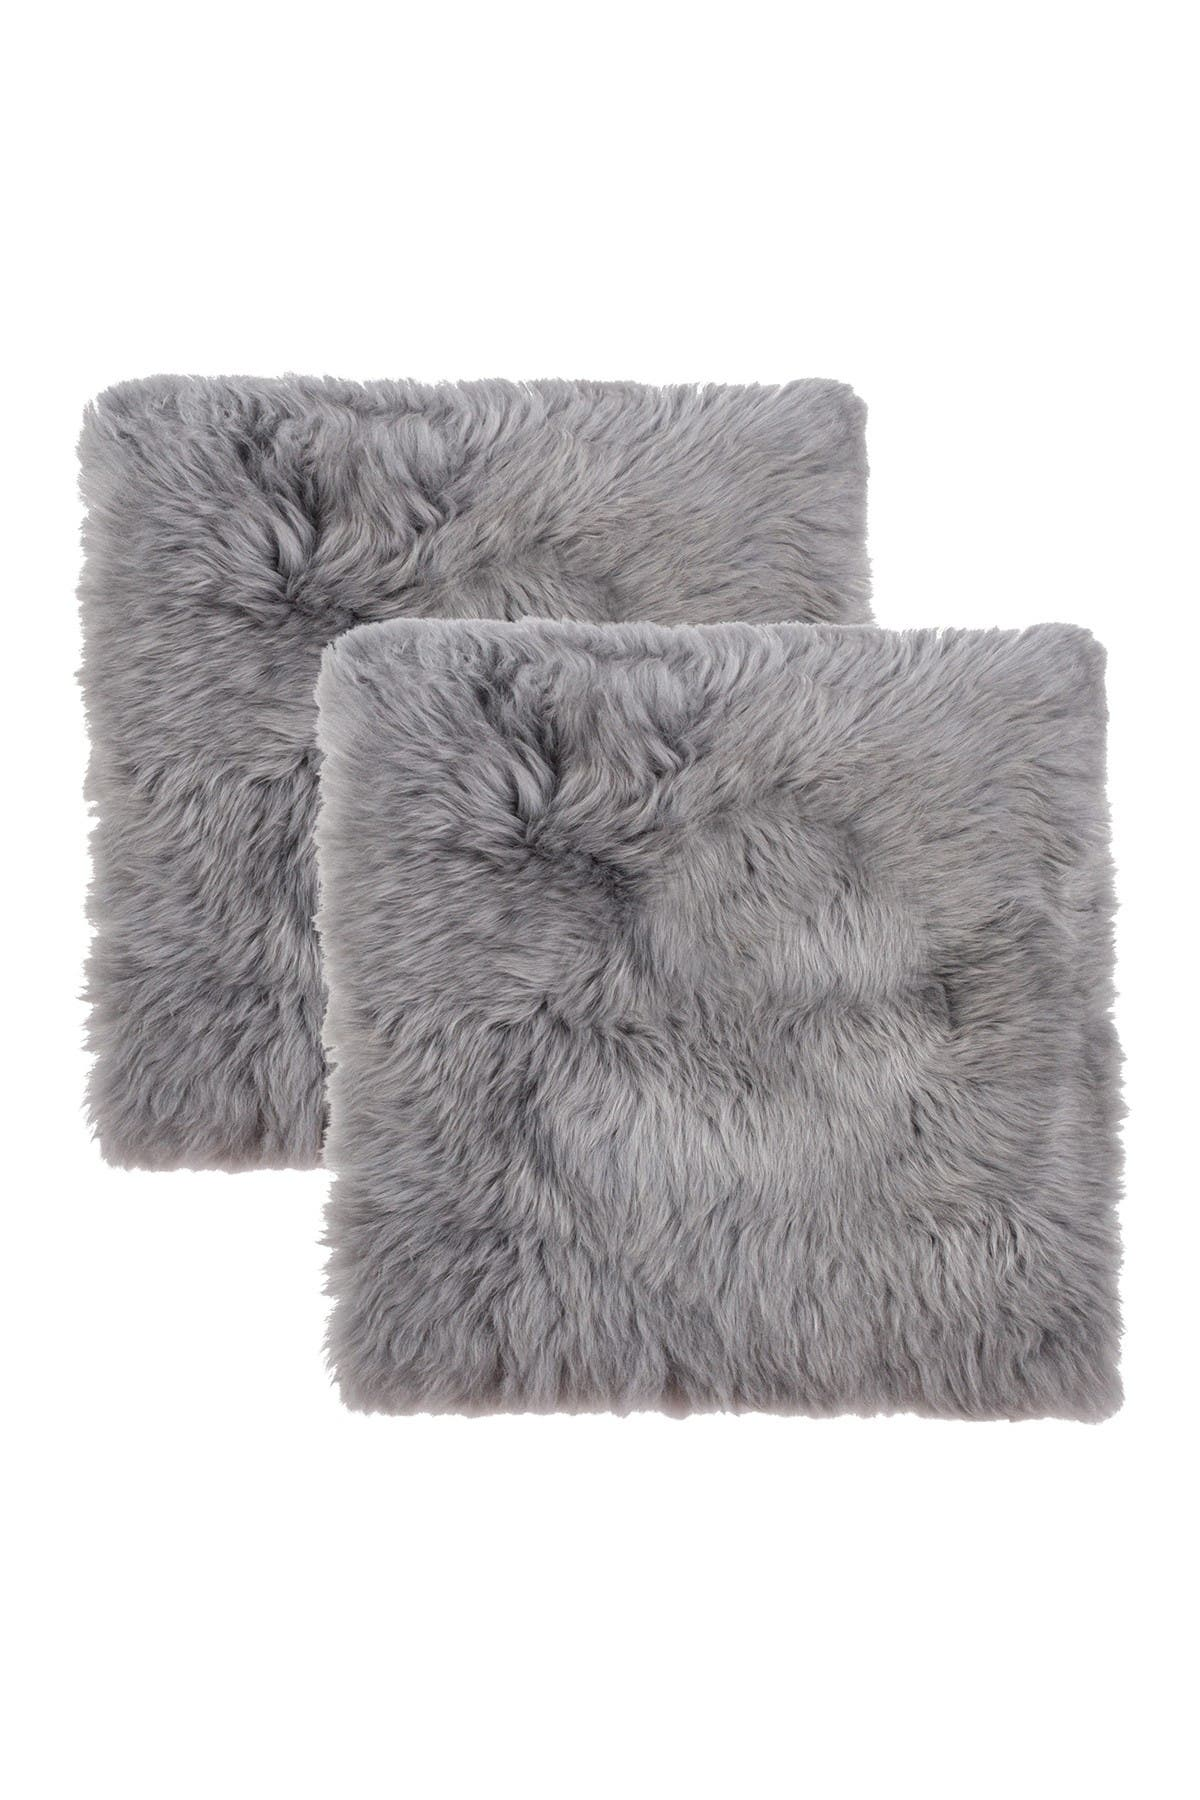 """Image of Natural New Zealand Genuine Sheepskin Shearling Chair Seat Pad - Set of 2 - 17"""" x 17"""" - Grey"""